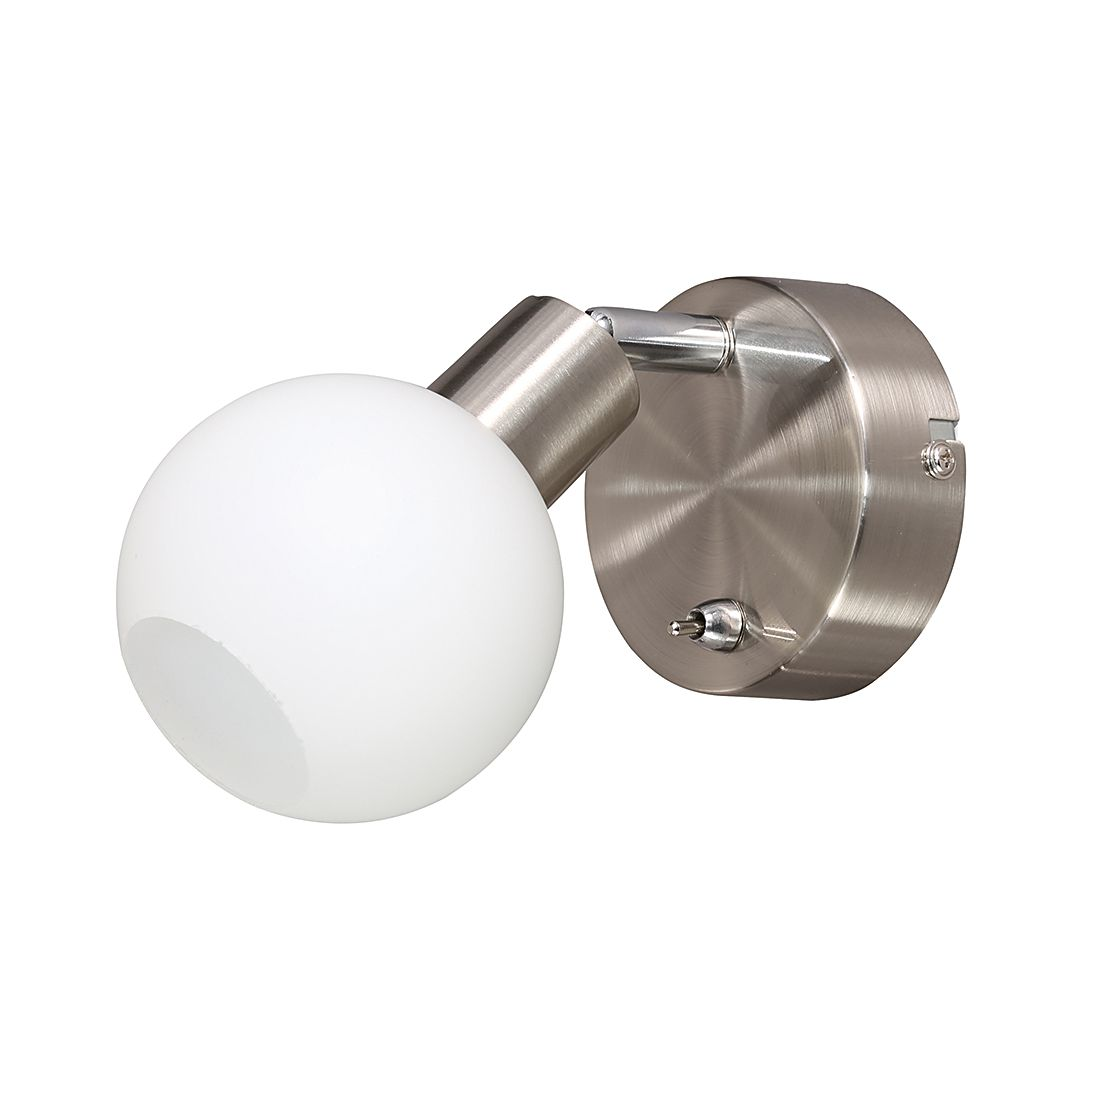 Wandleuchte NOIS ● Metall/Glas ● 1-flammig- Action A+